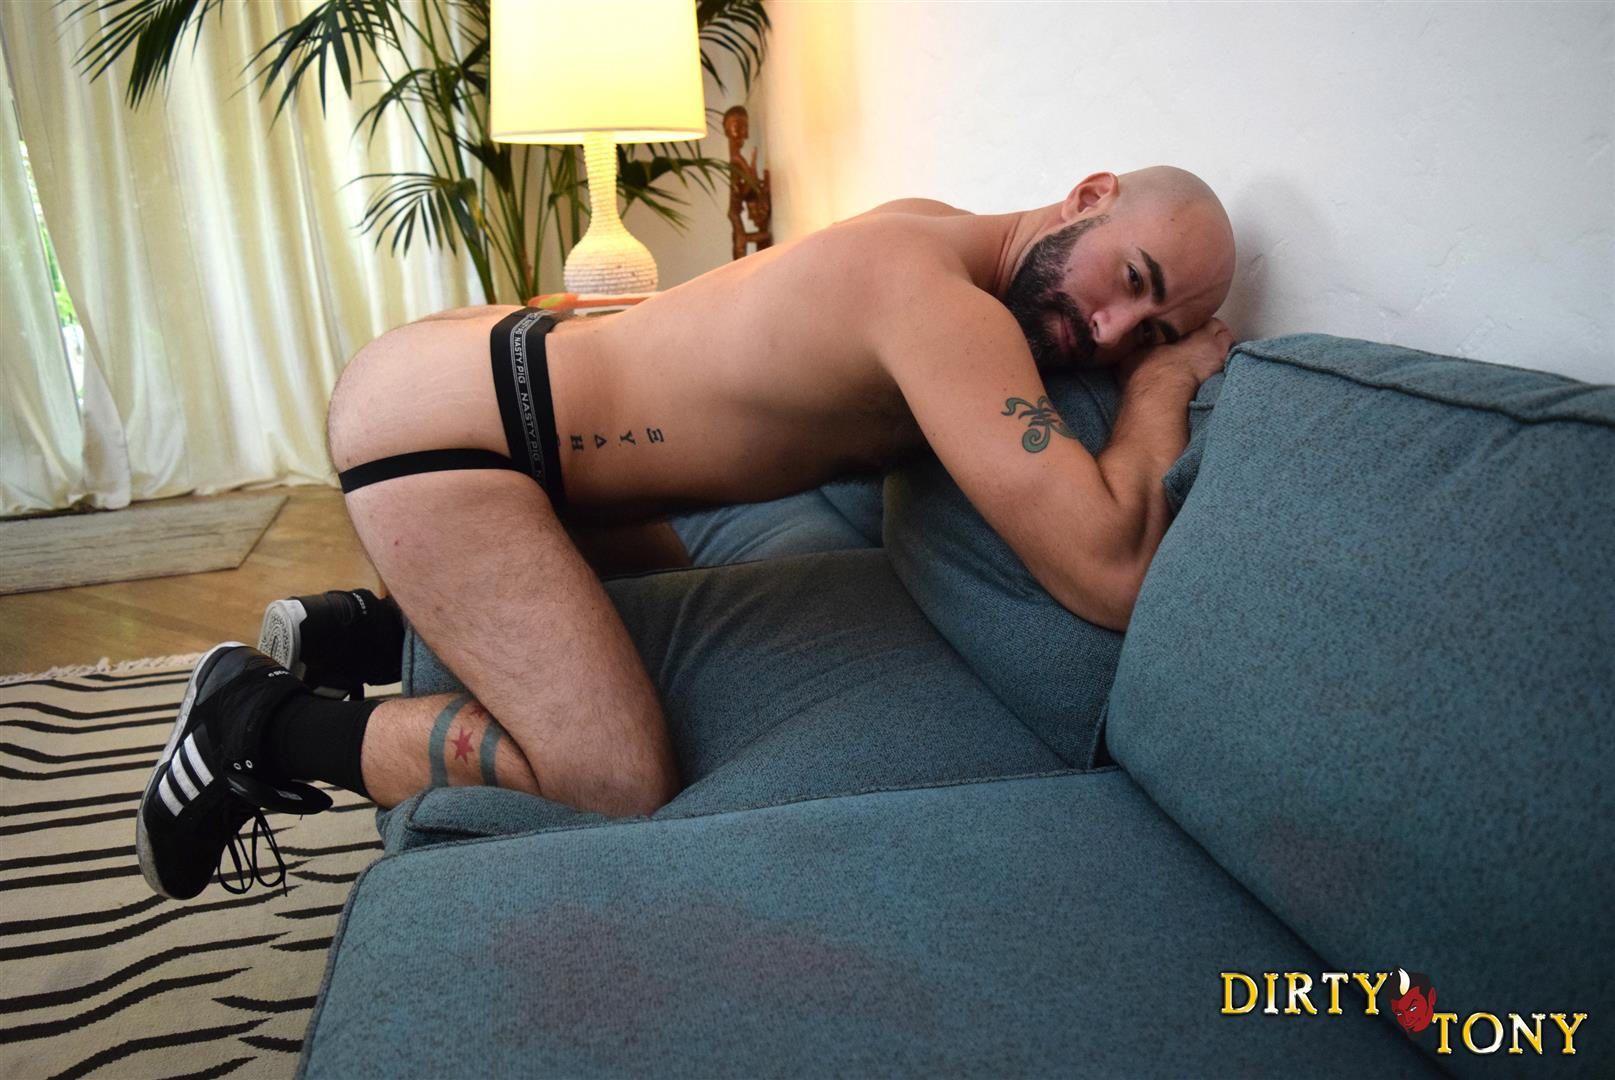 Dirty-Tony-Damon-Andros-Hairy-Otter-With-A-Thick-Cock-Amateur-Gay-Porn-02 Jocked Up Furry Otter Stroking His Thick Cock